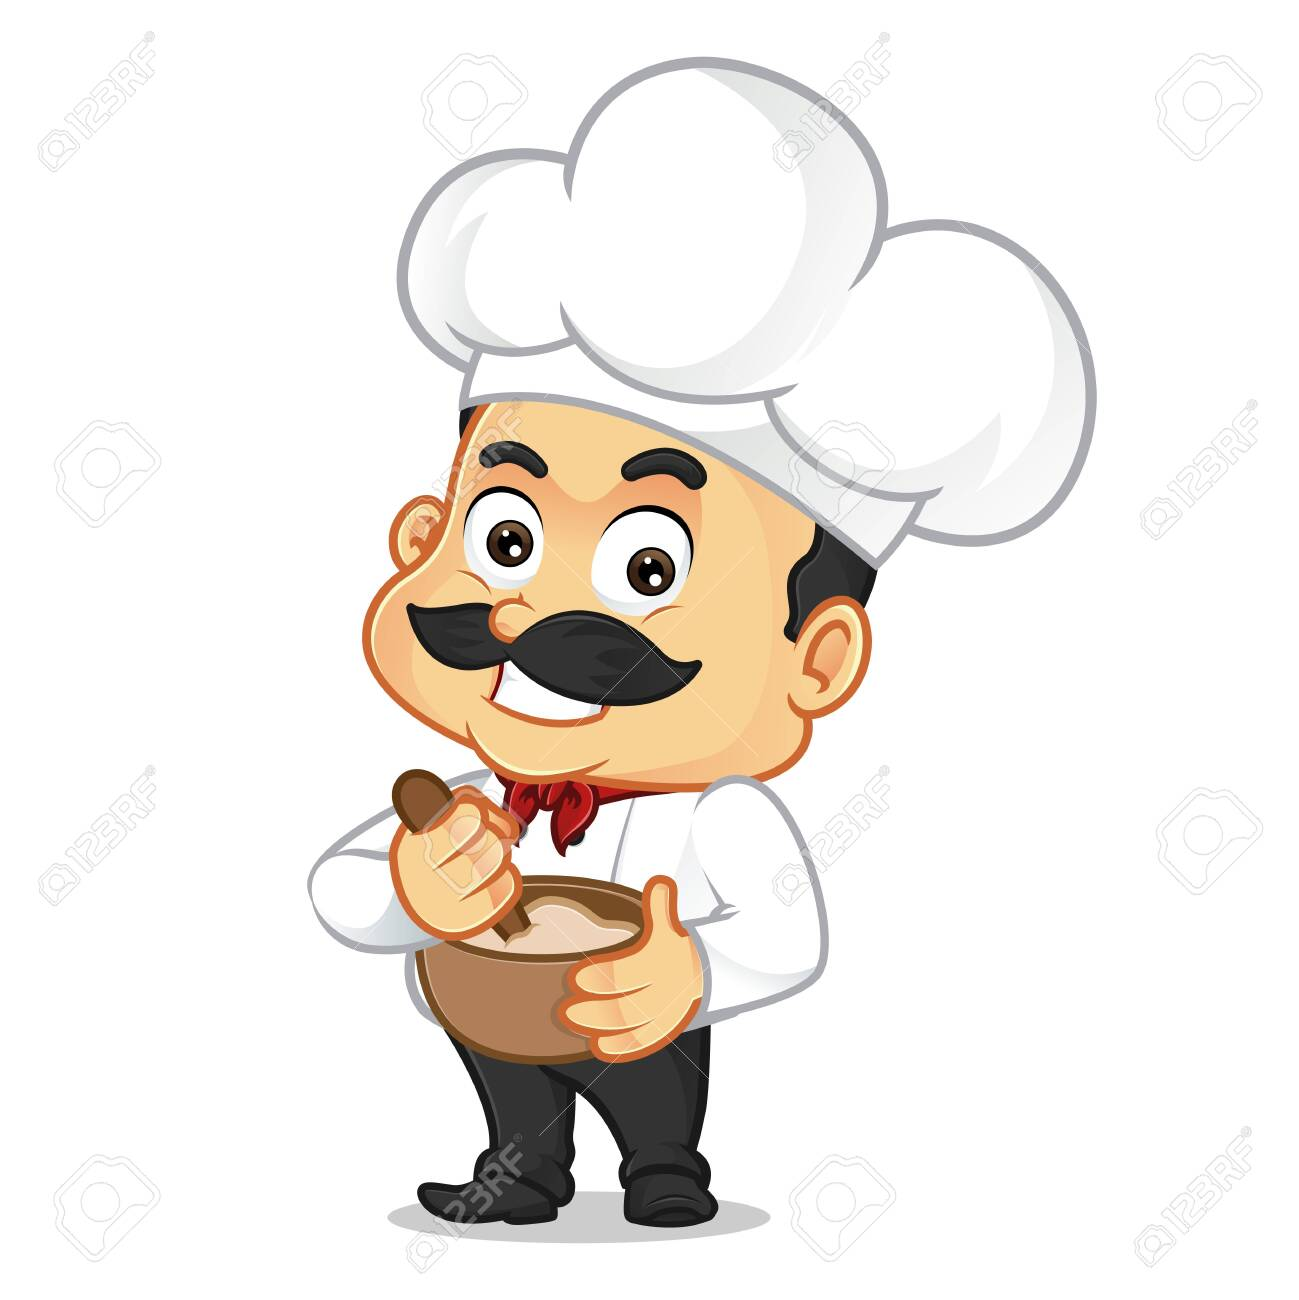 Chef Cartoon Cooking Isolated In White Background Royalty Free Cliparts Vectors And Stock Illustration Image 142599511